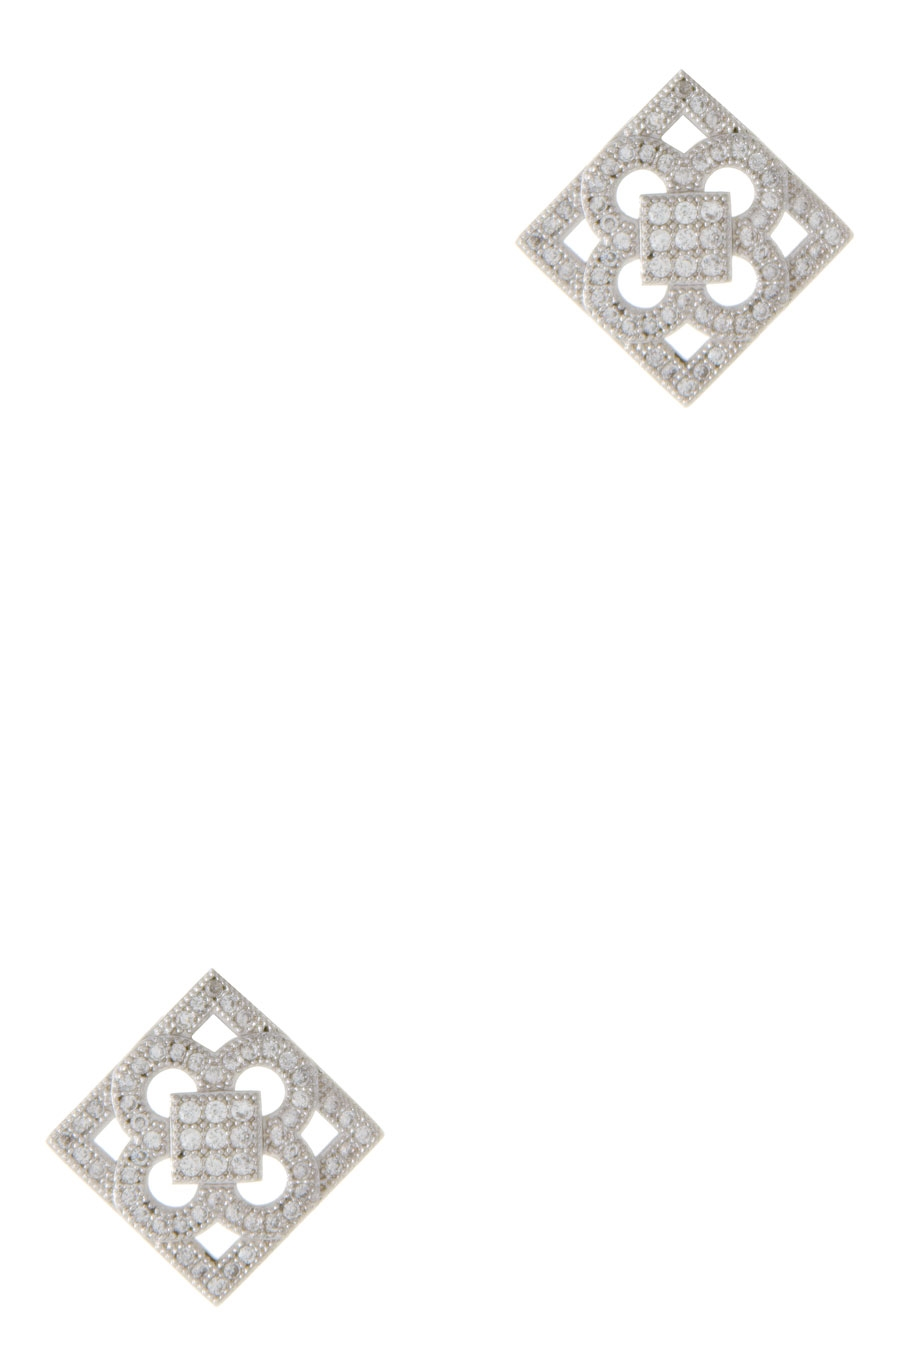 CZ PAVE CUT-OUT DESIGN EARRING - orangeshine.com